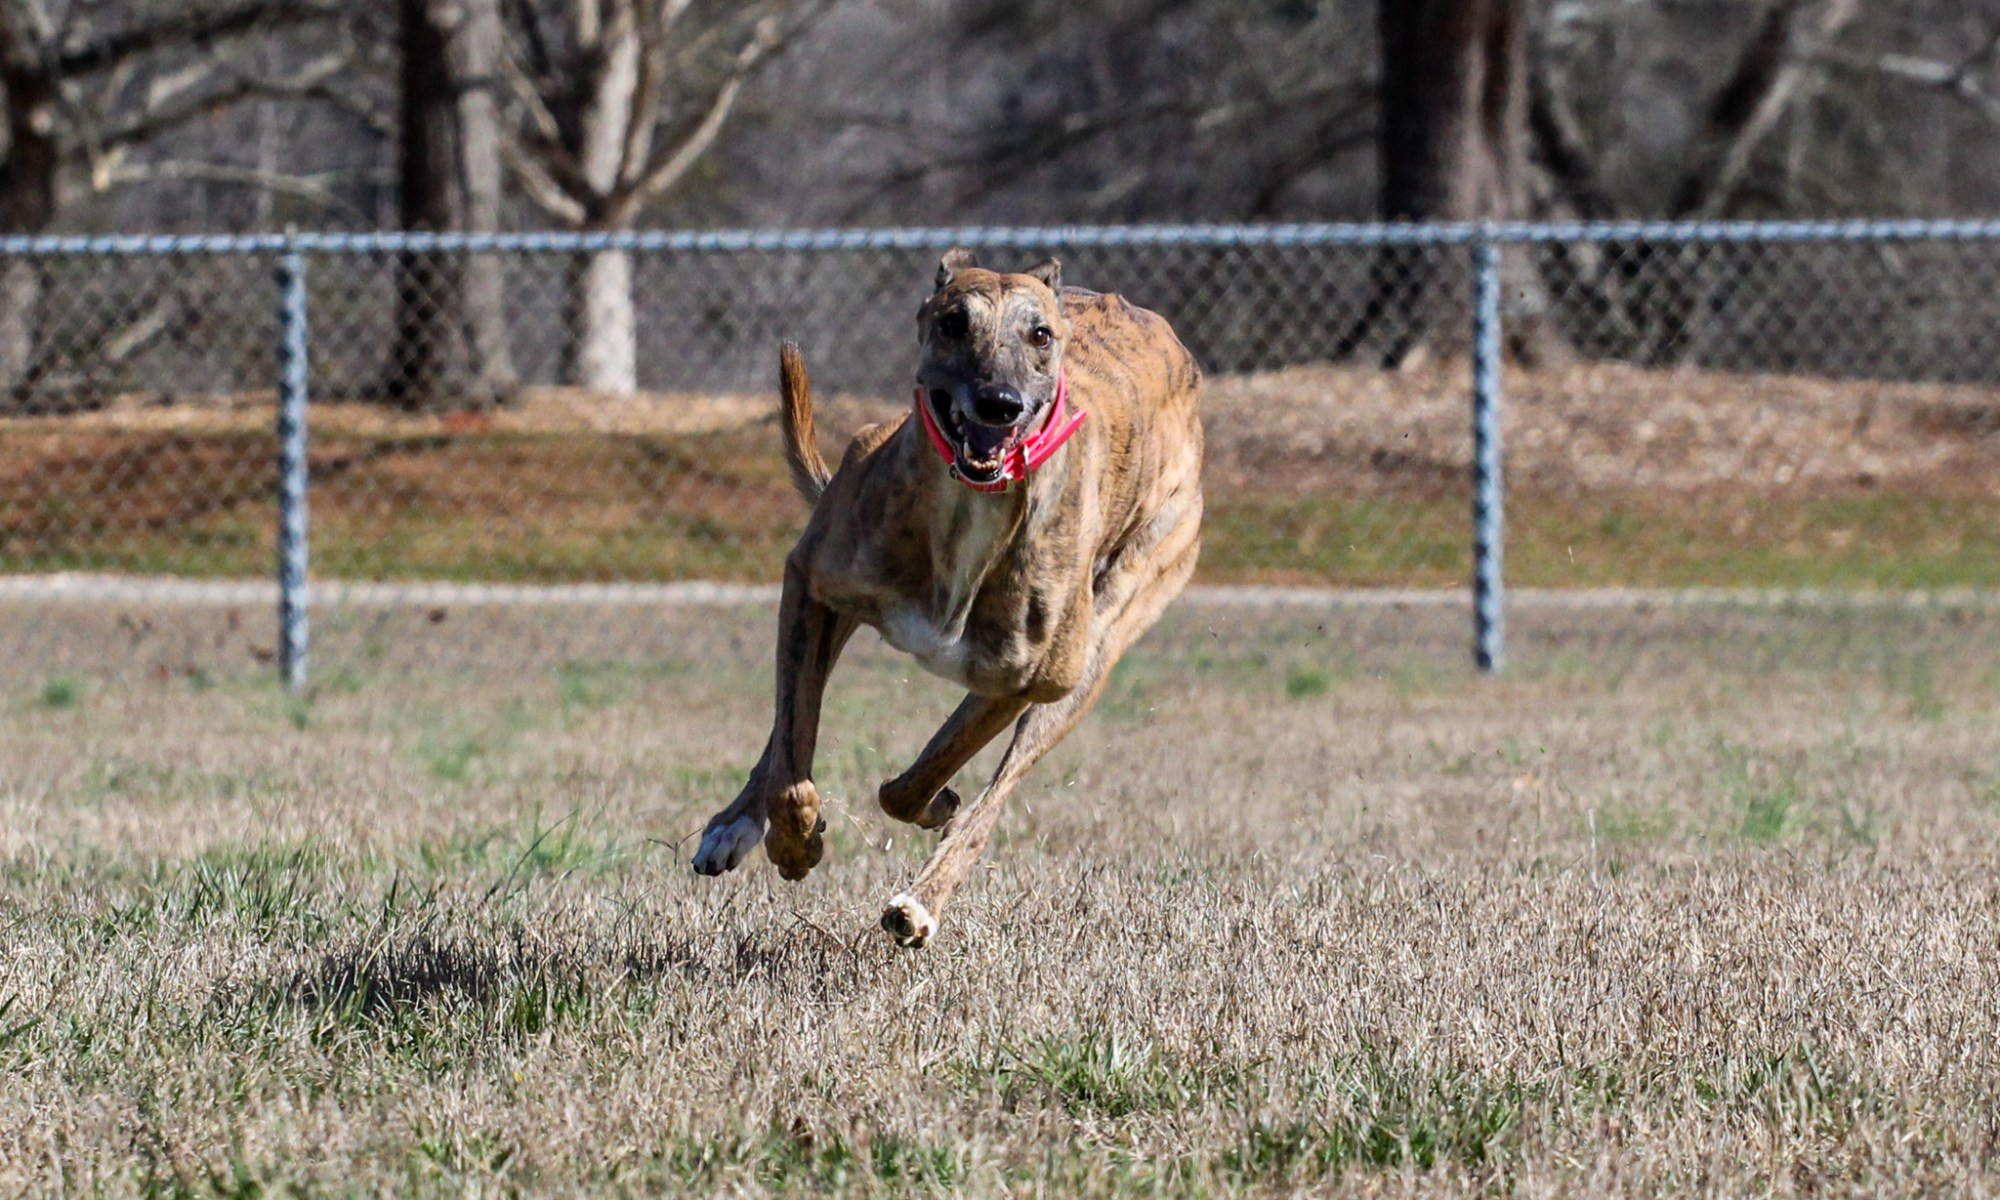 By Now You Have Probably Noticed There Are A Lot Of Pictures Of My Dogs  Running And Playing Without Leashes I Want To Make It Clear That Generally  Speaking